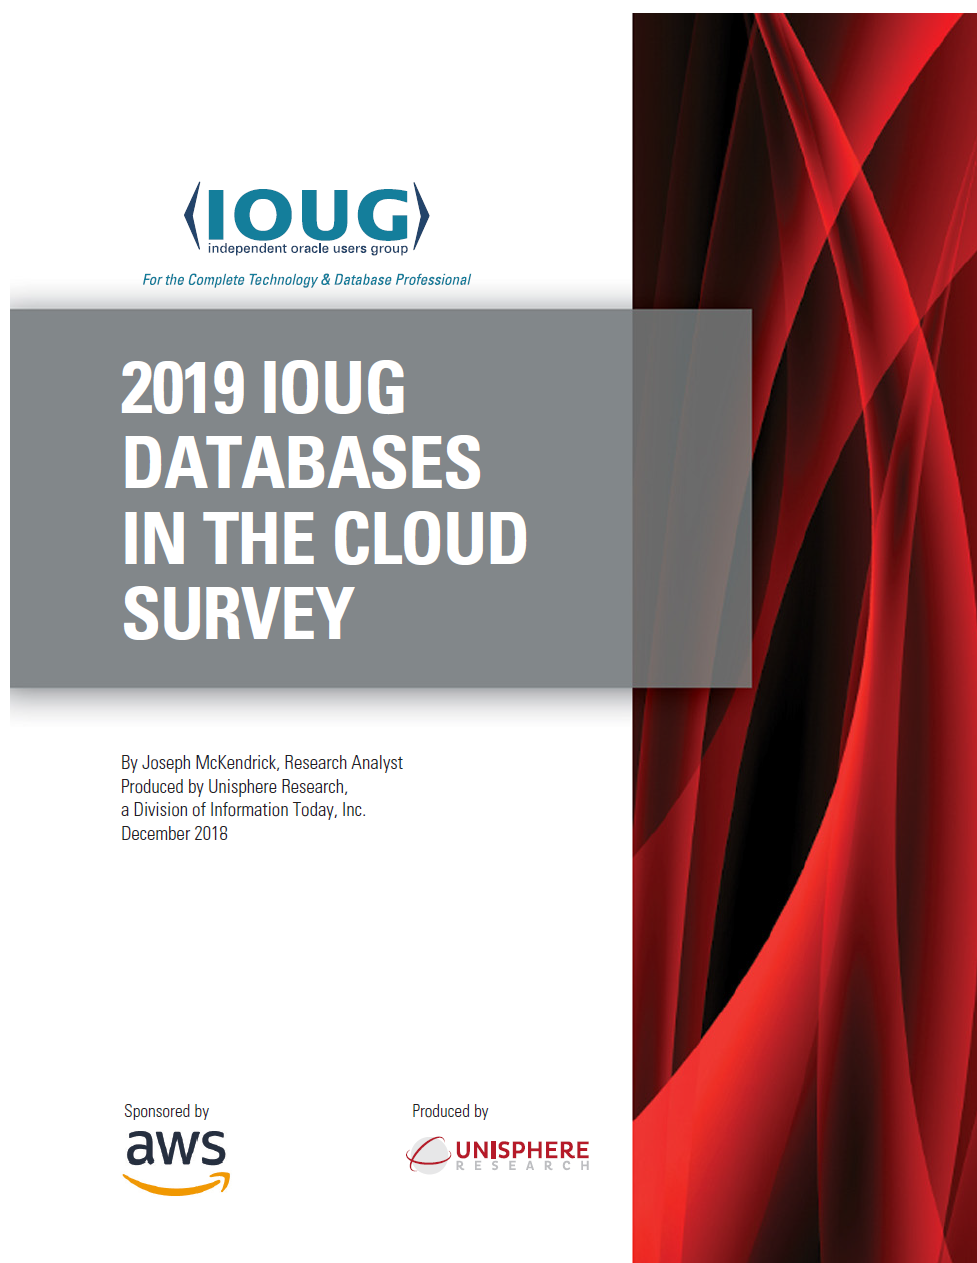 Survei Database Cloud IOUG